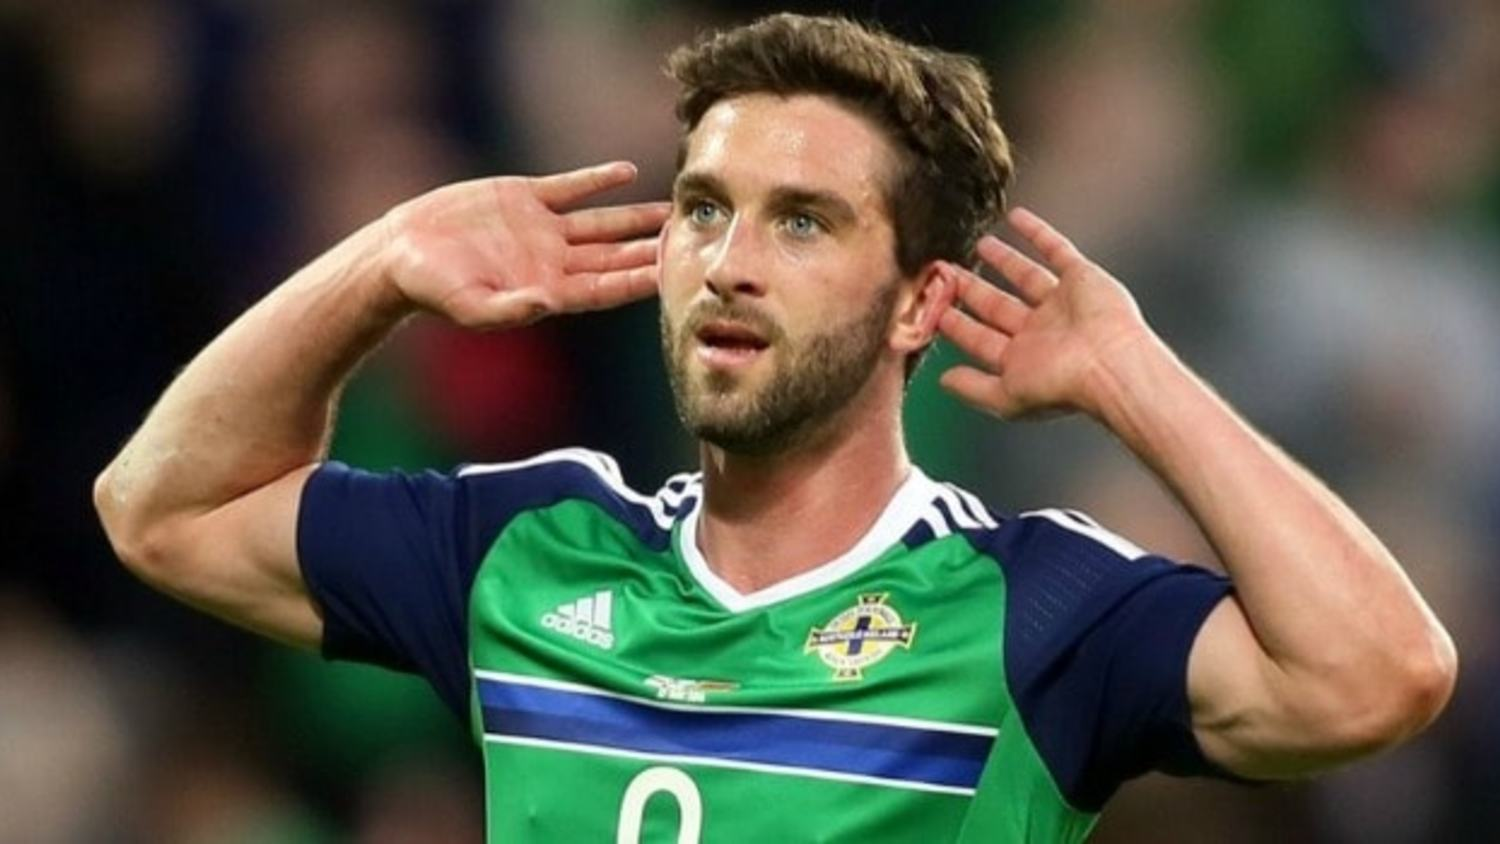 WILL GRIGG ON THE SAME LEVEL AS PAUL POGBA?